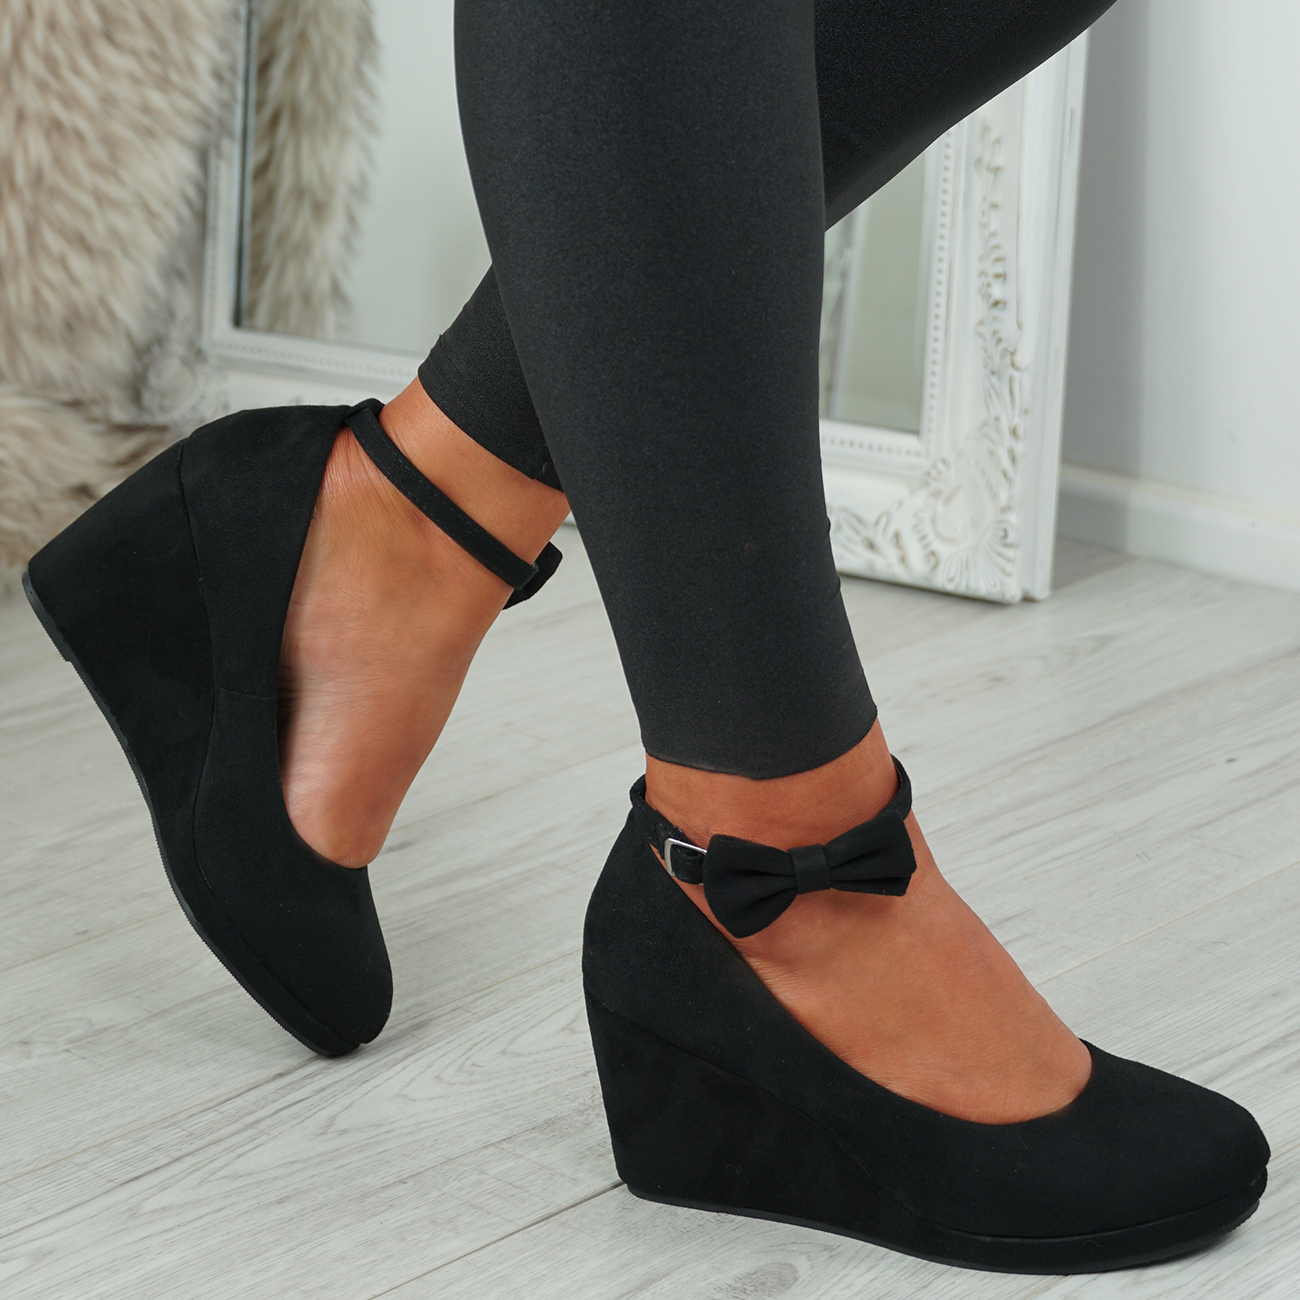 NEW-WOMENS-ANKLE-STRAP-WEDGES-LADIES-HIGH-HEEL-BOW-PUMPS-PLATFORM-SHOES thumbnail 7